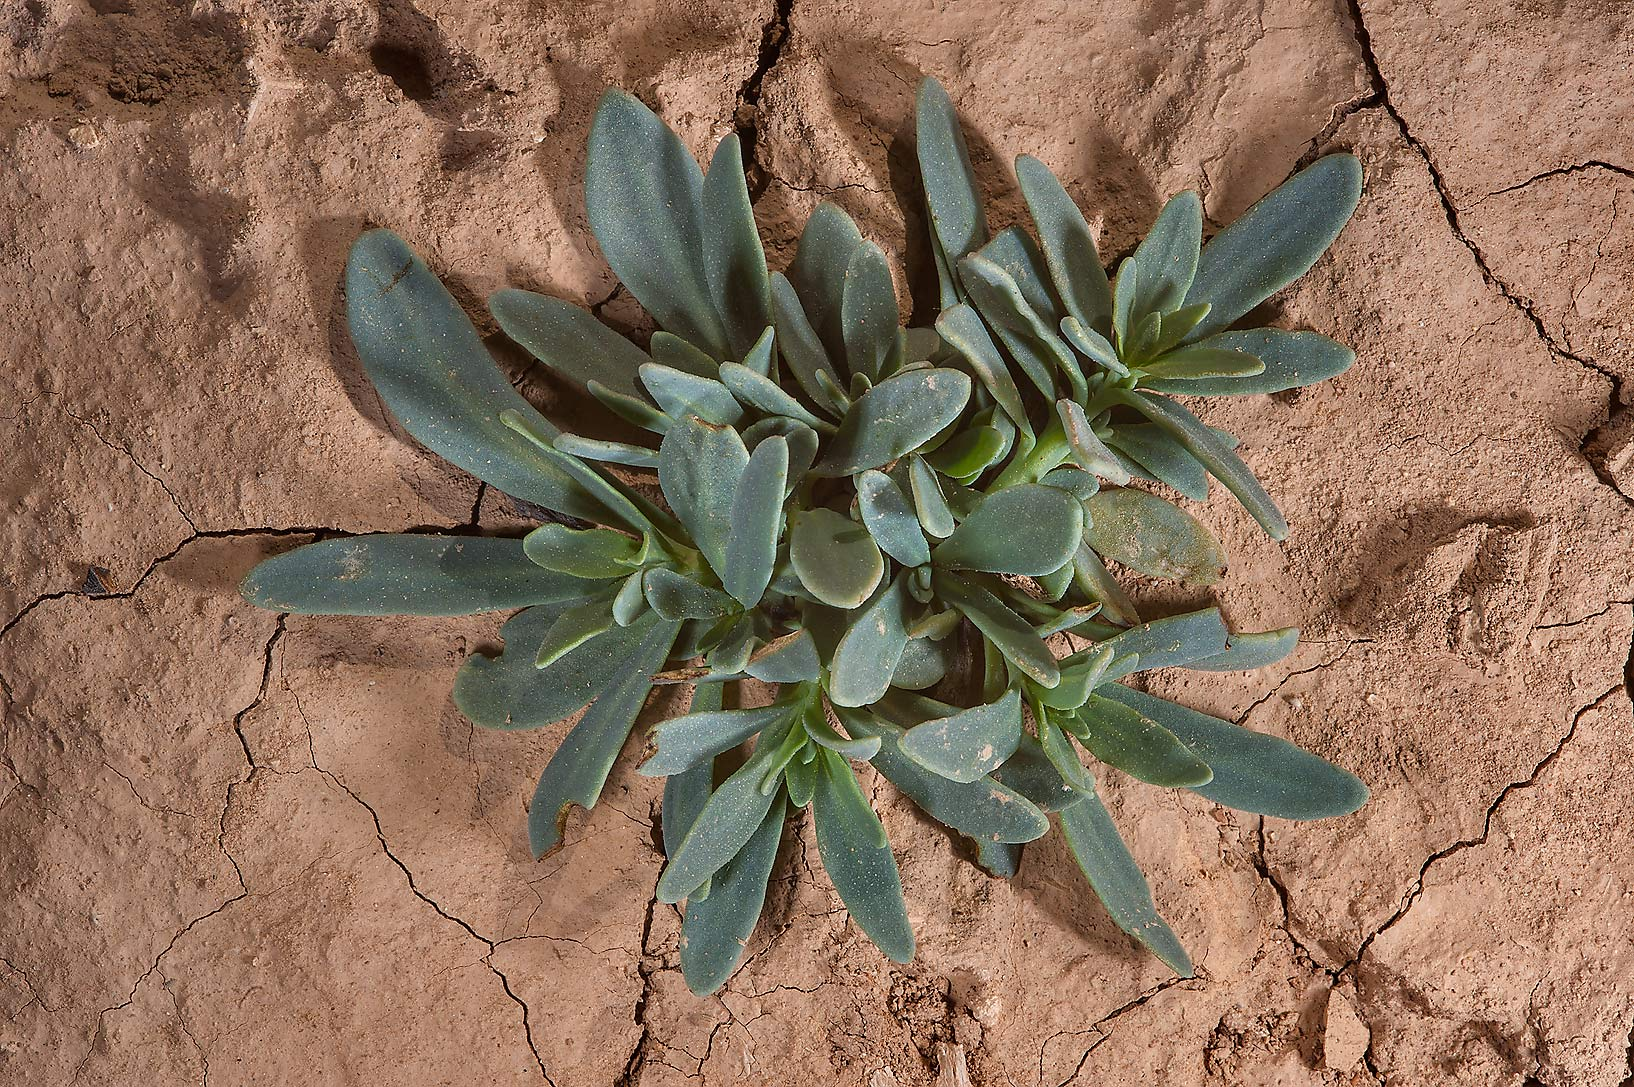 Seedling of seaside heliotrope (Heliotropium...Al Numan) near Zubara. Northern Qatar